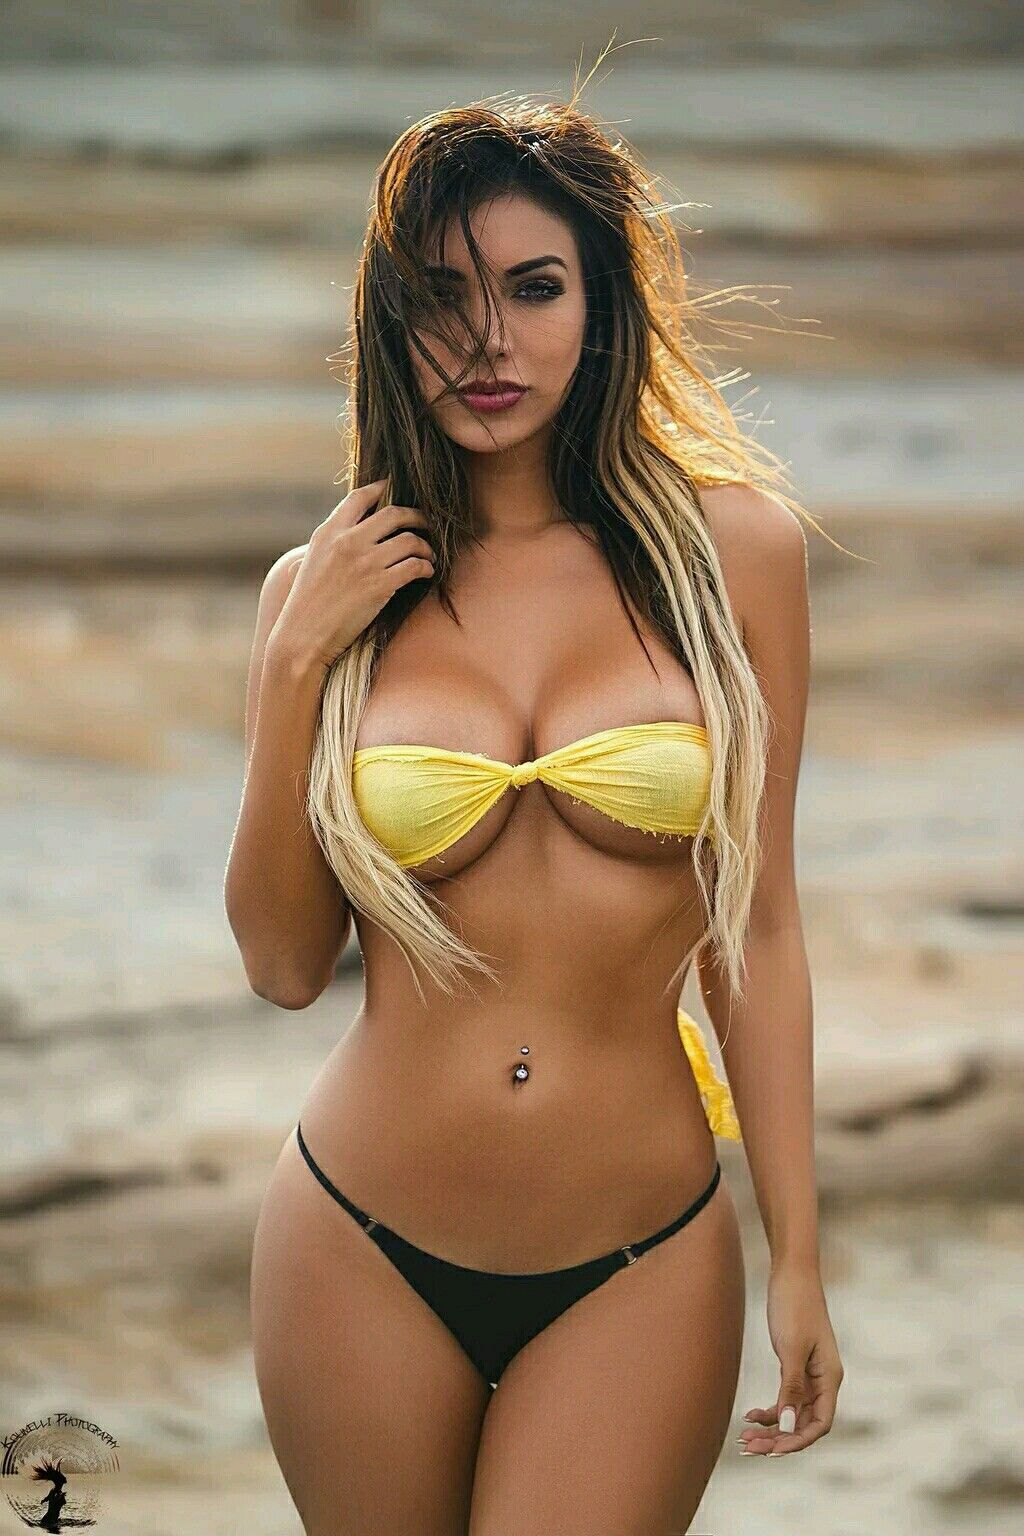 2017 ) ☆ BEAUTIFUL BIKINI ☀️ GIRL ☆ | WOW!!! | Bikini ... - photo#21